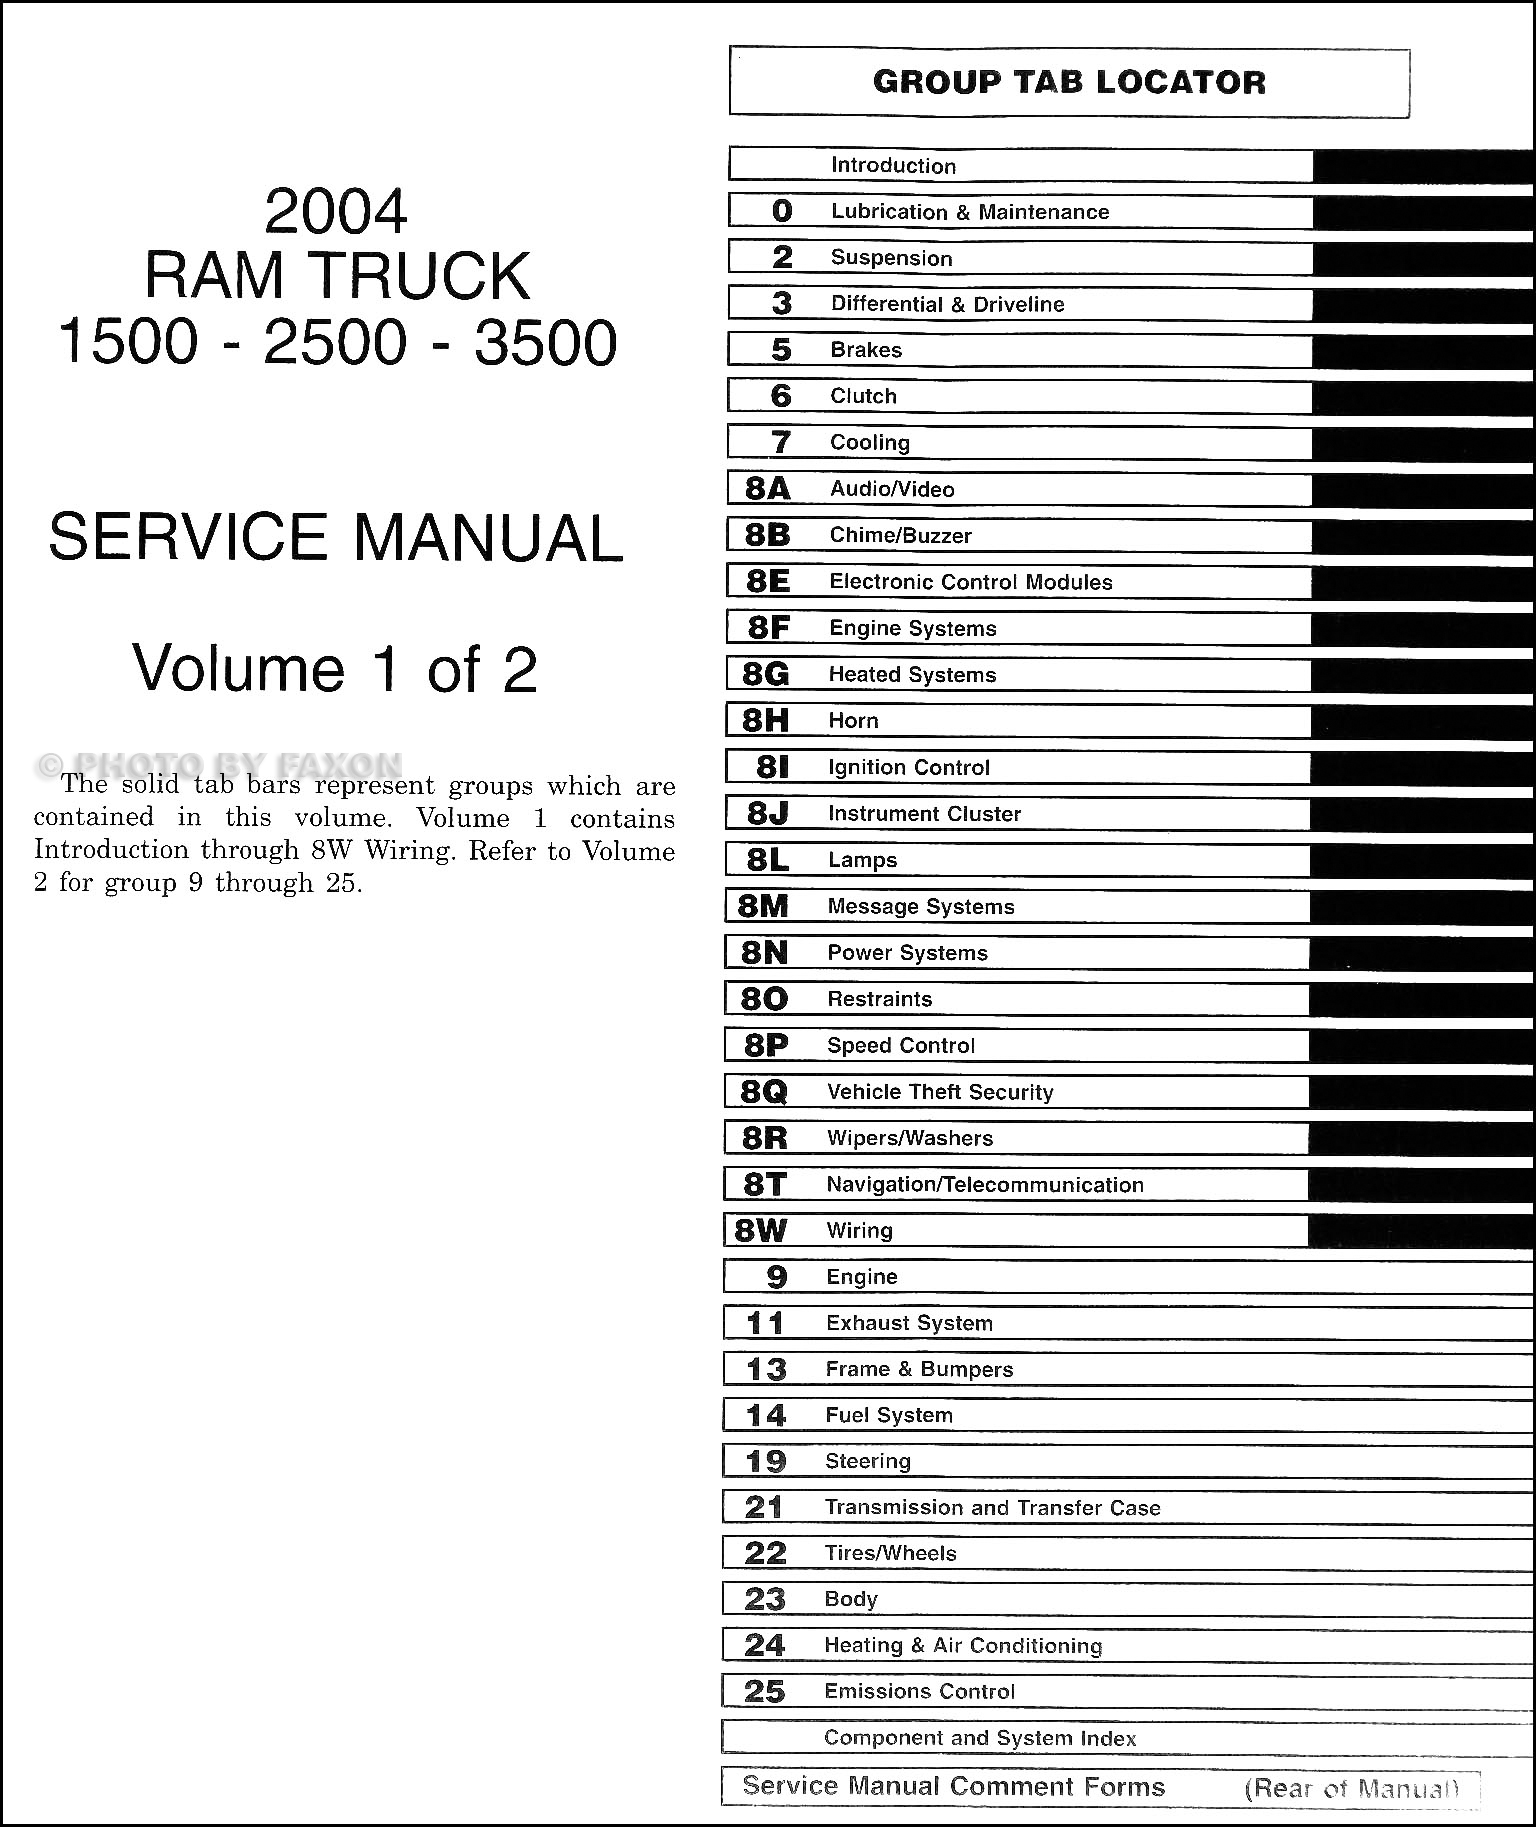 1994 Dodge Ram 1500-3500 Truck Shop Manual Original · Table of Contents